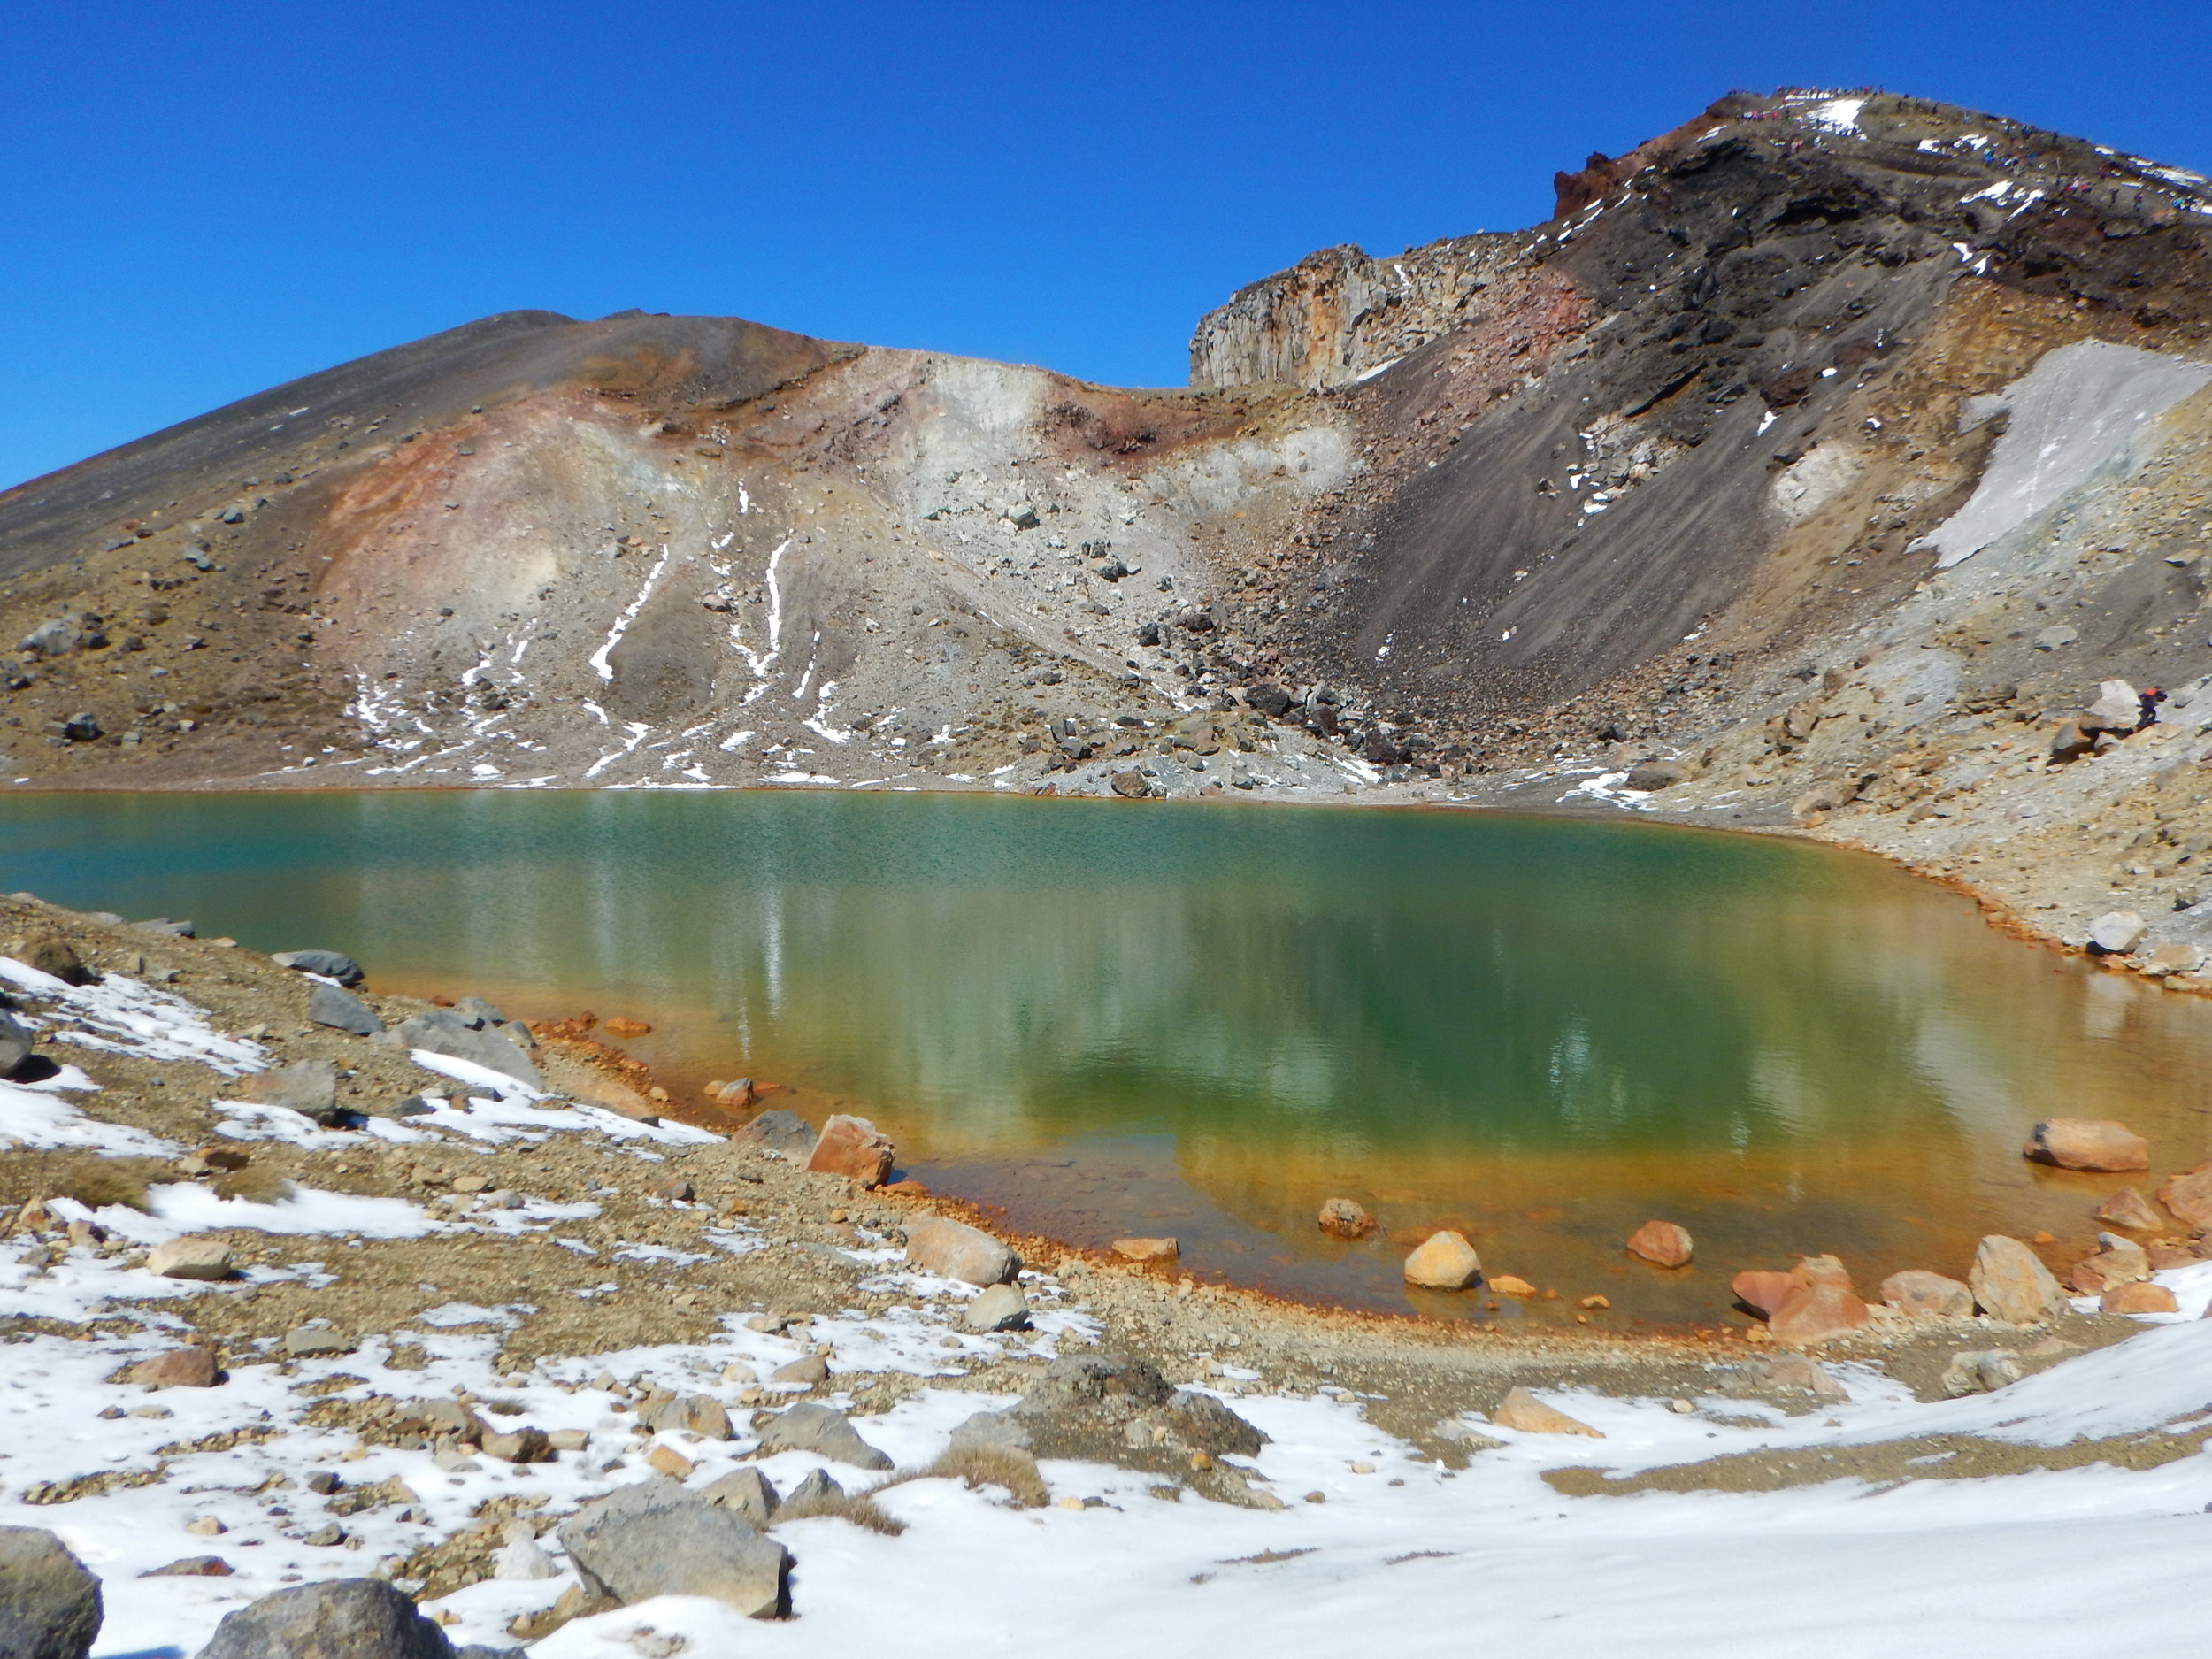 Another of the Emerald Lakes.